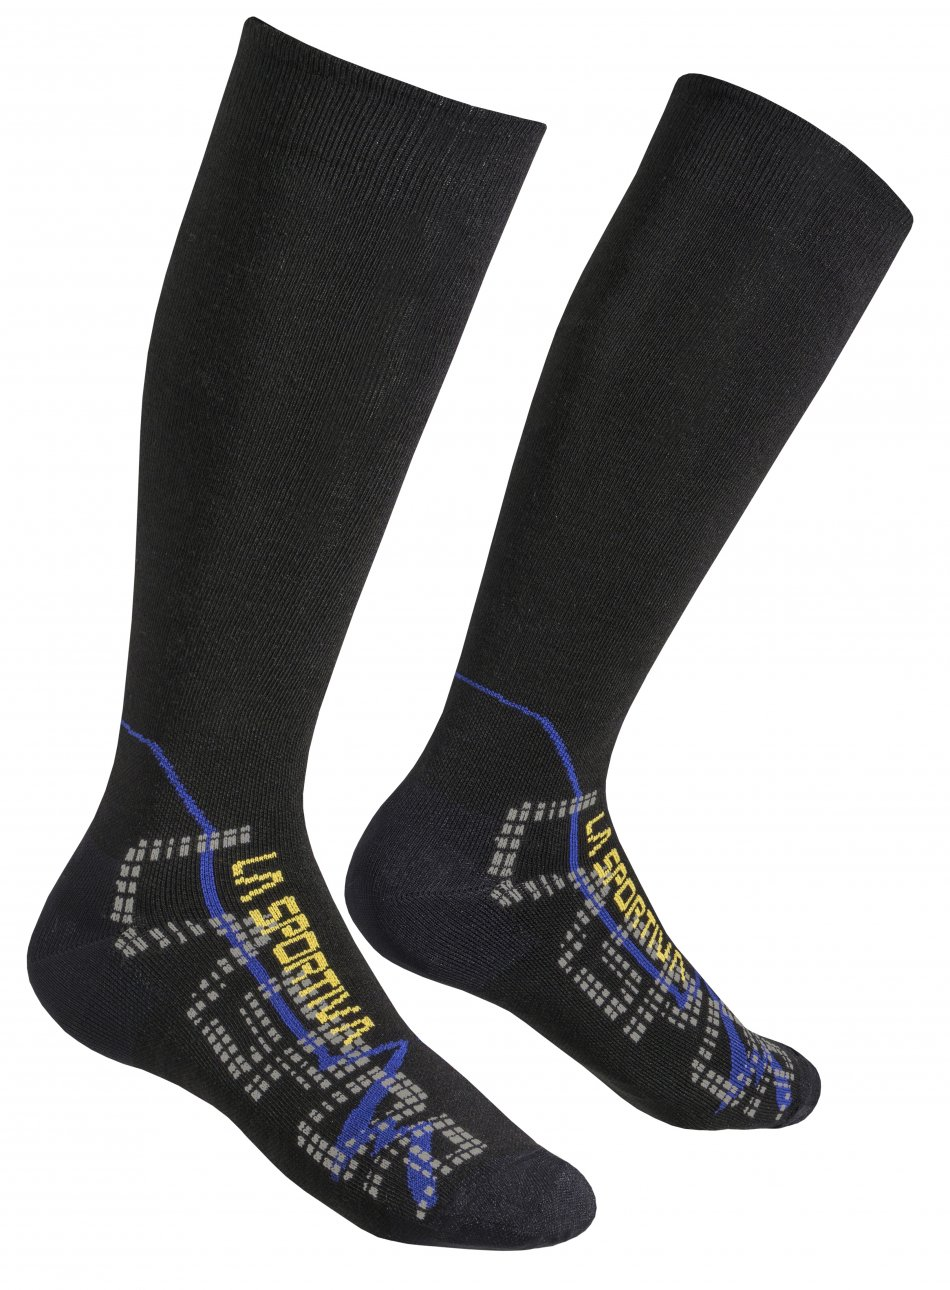 Skimo Tour Socks yellowblue (39YBY)